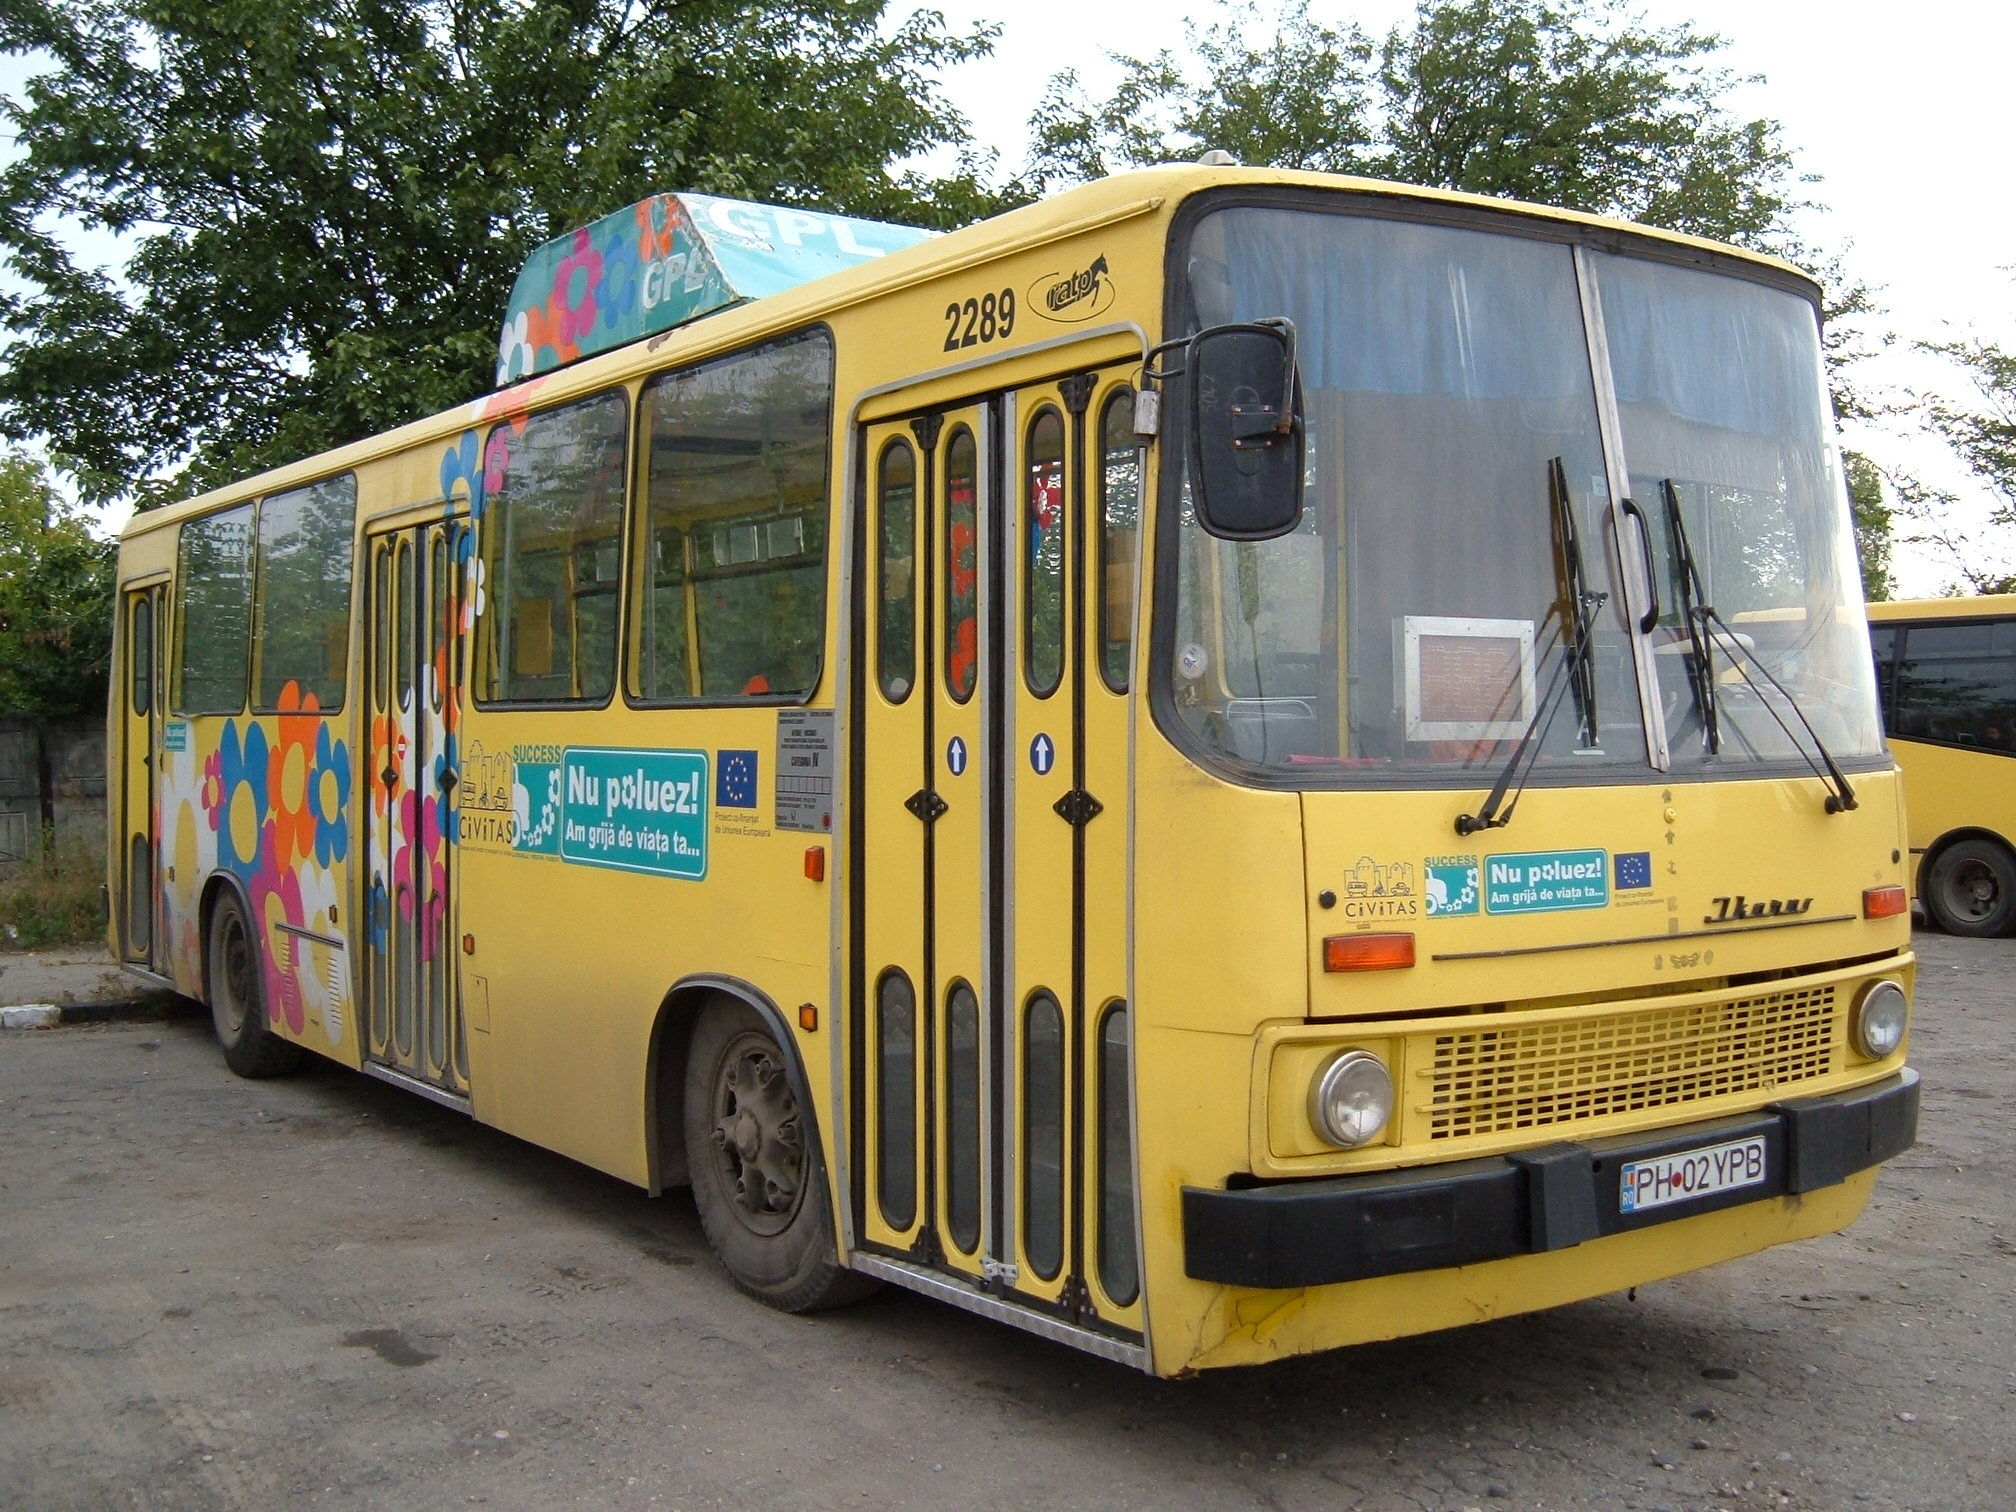 2289. Bus Ikarus on line Dp